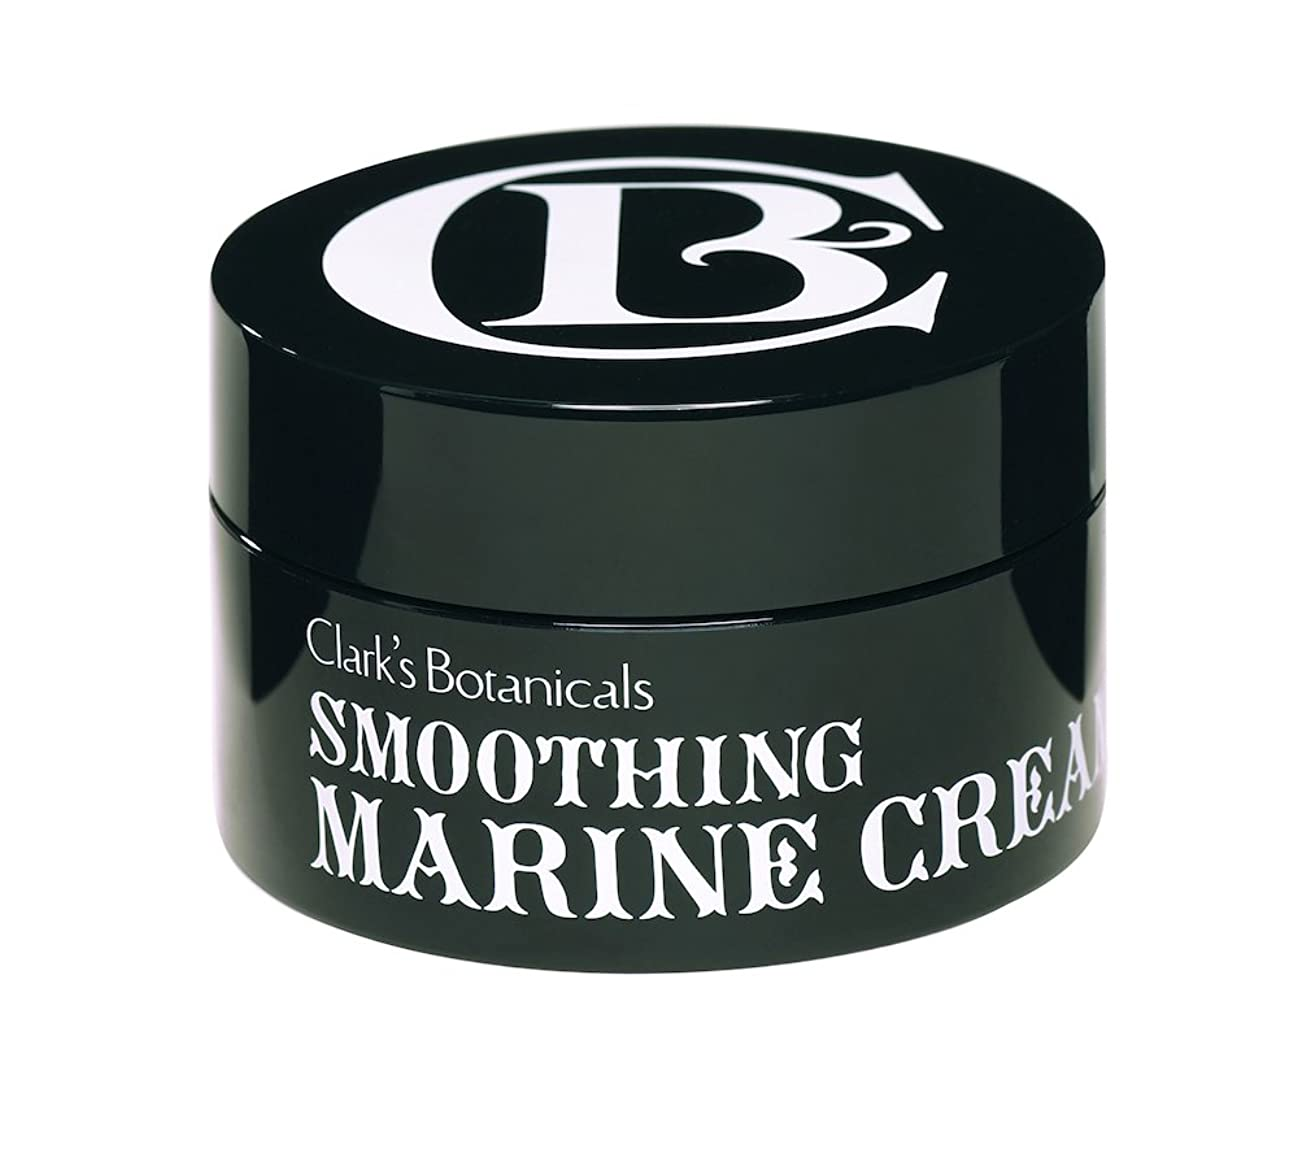 カード好奇心批判的にClark's Botanicals Smoothing Marine Cream 1.7 Fl Oz/ 50ml